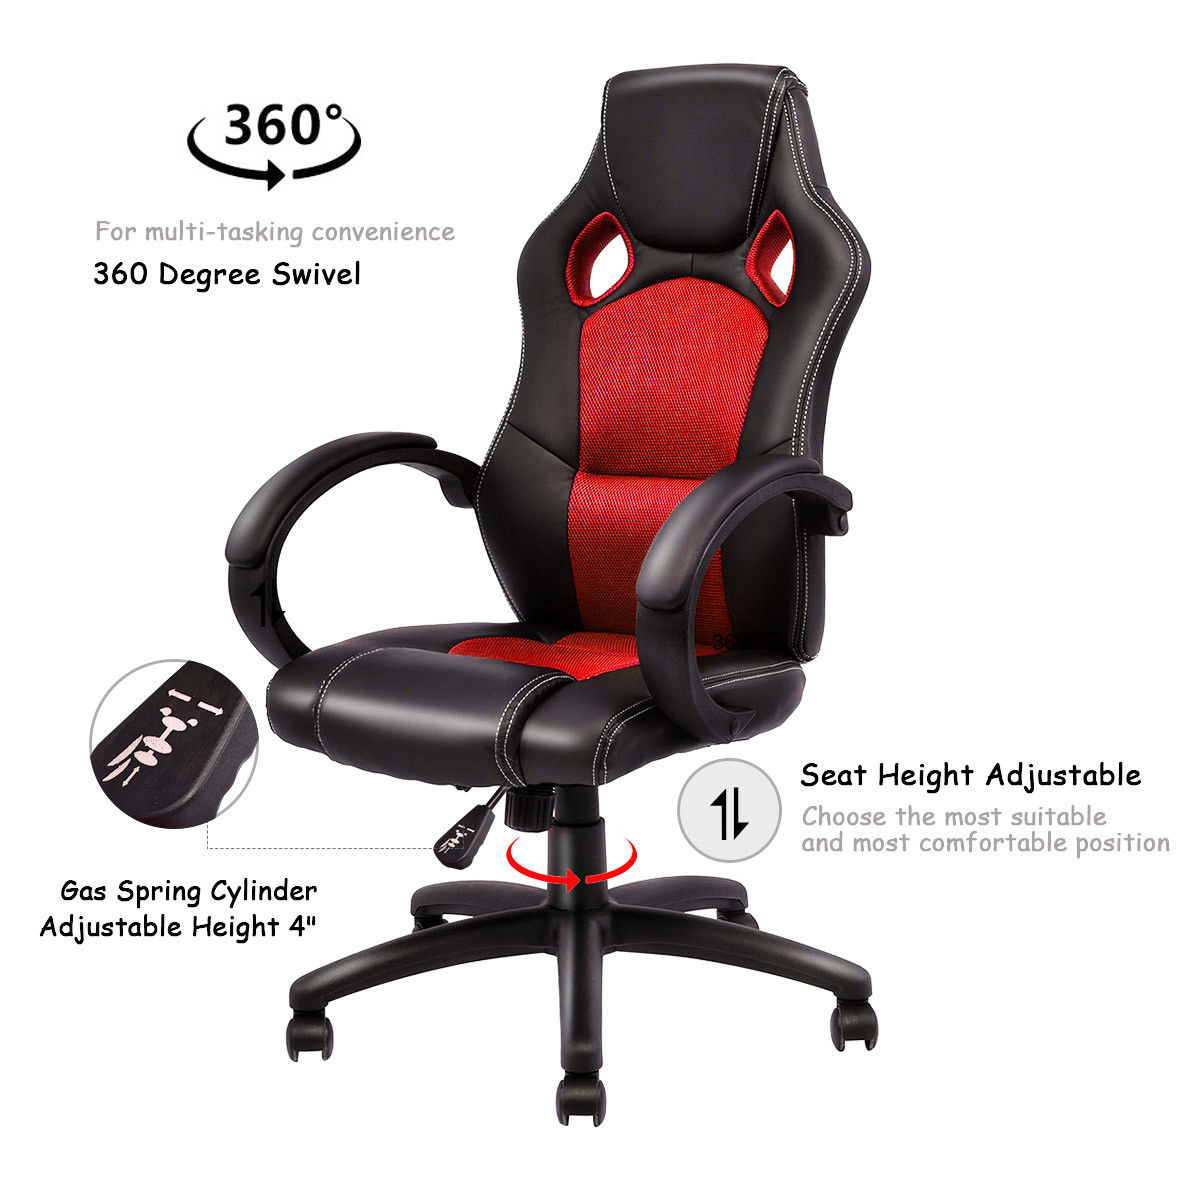 Office Chair Posture Us 74 99 Giantex Modern Office Chair Racing High Back Gaming Chair Ergonomic Computer Desk Armchair Office Furniture Hw54590re In Office Chairs From